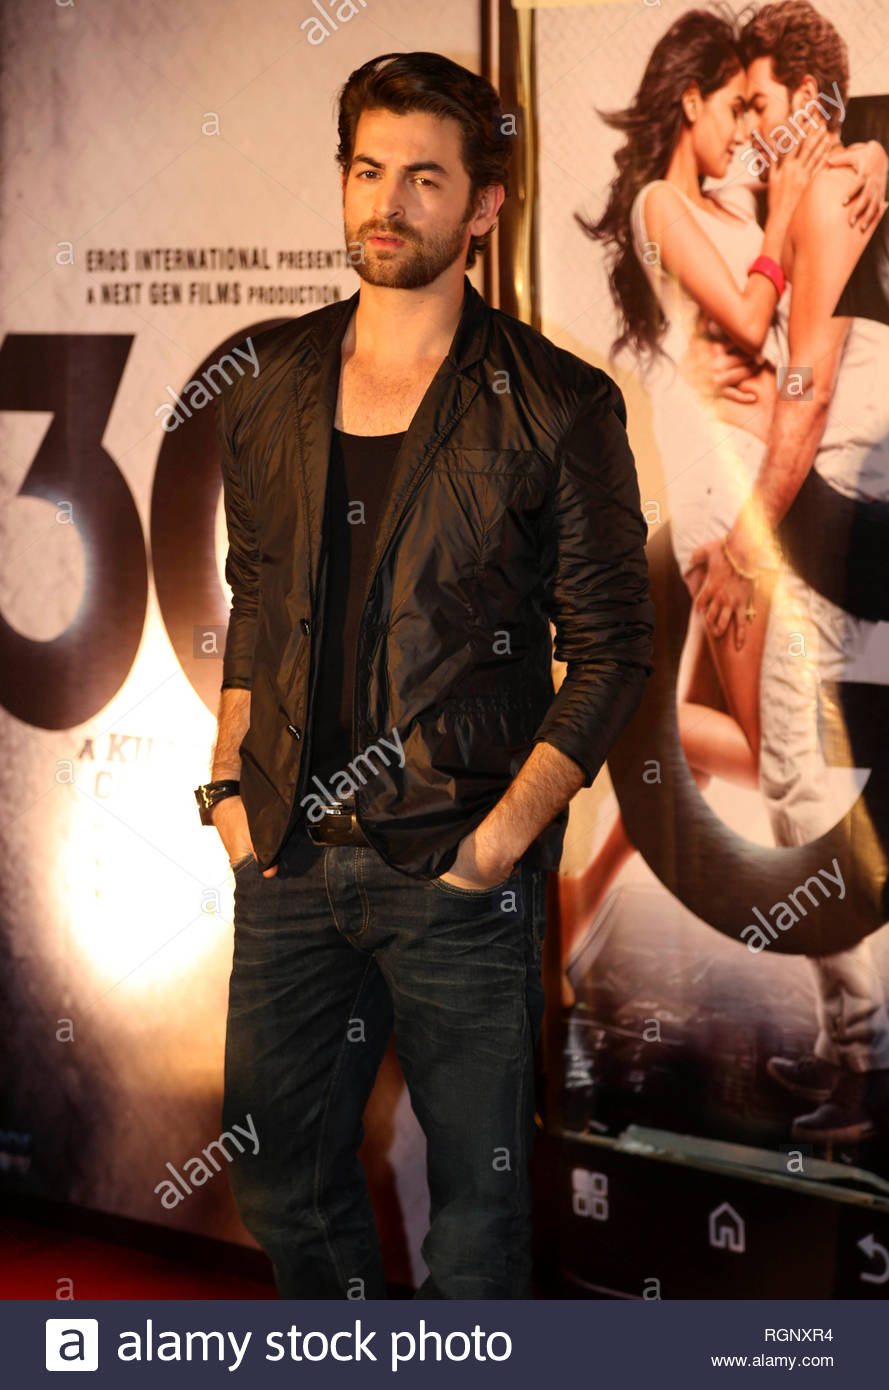 Bollywood actor Neil Nitin Mukesh during music and trailer launch of his horror film 3G in Mumbai, India on February 15, 2013. (Aakash Berde) - Stock Image